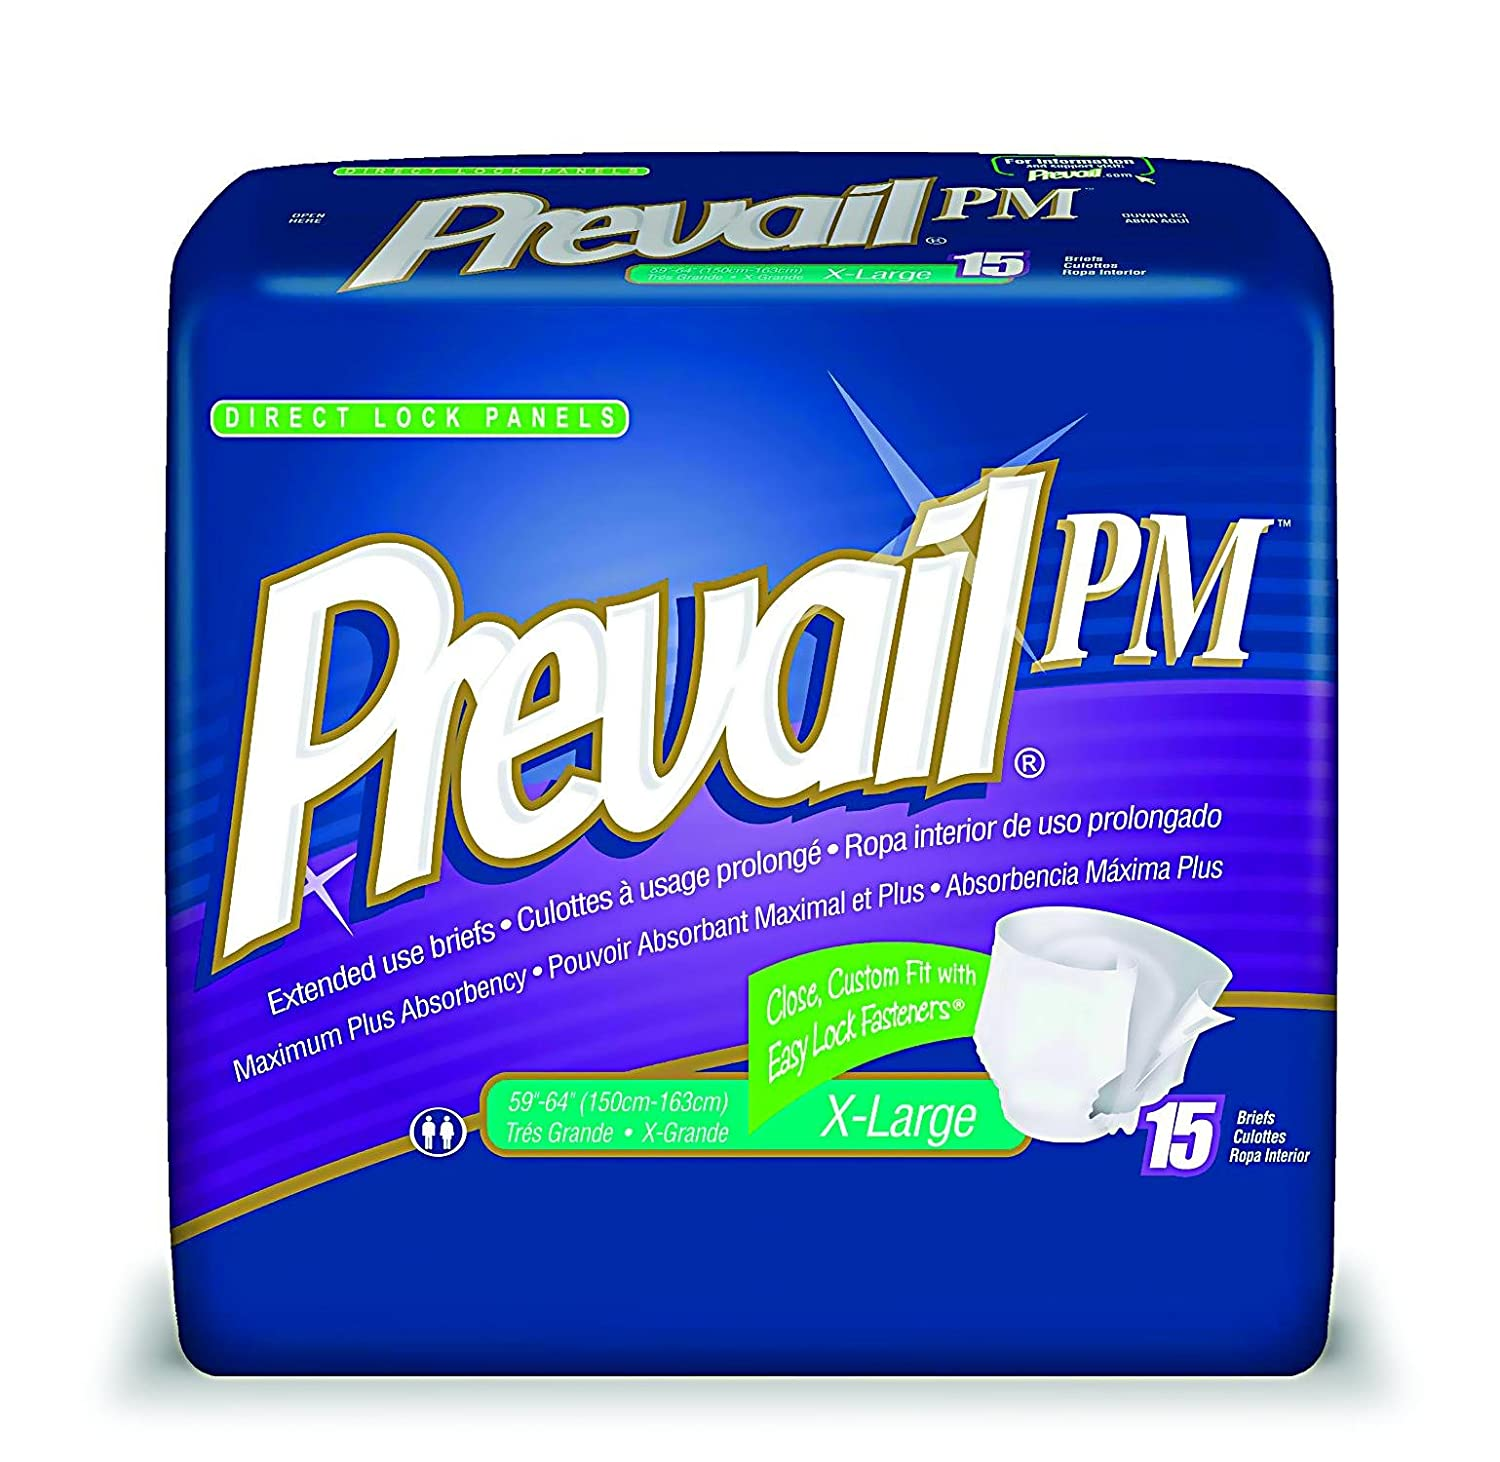 Amazon.com: Prevail Pm Extended Wear Adult Briefs Medium /White/Case of 96: Health & Personal Care